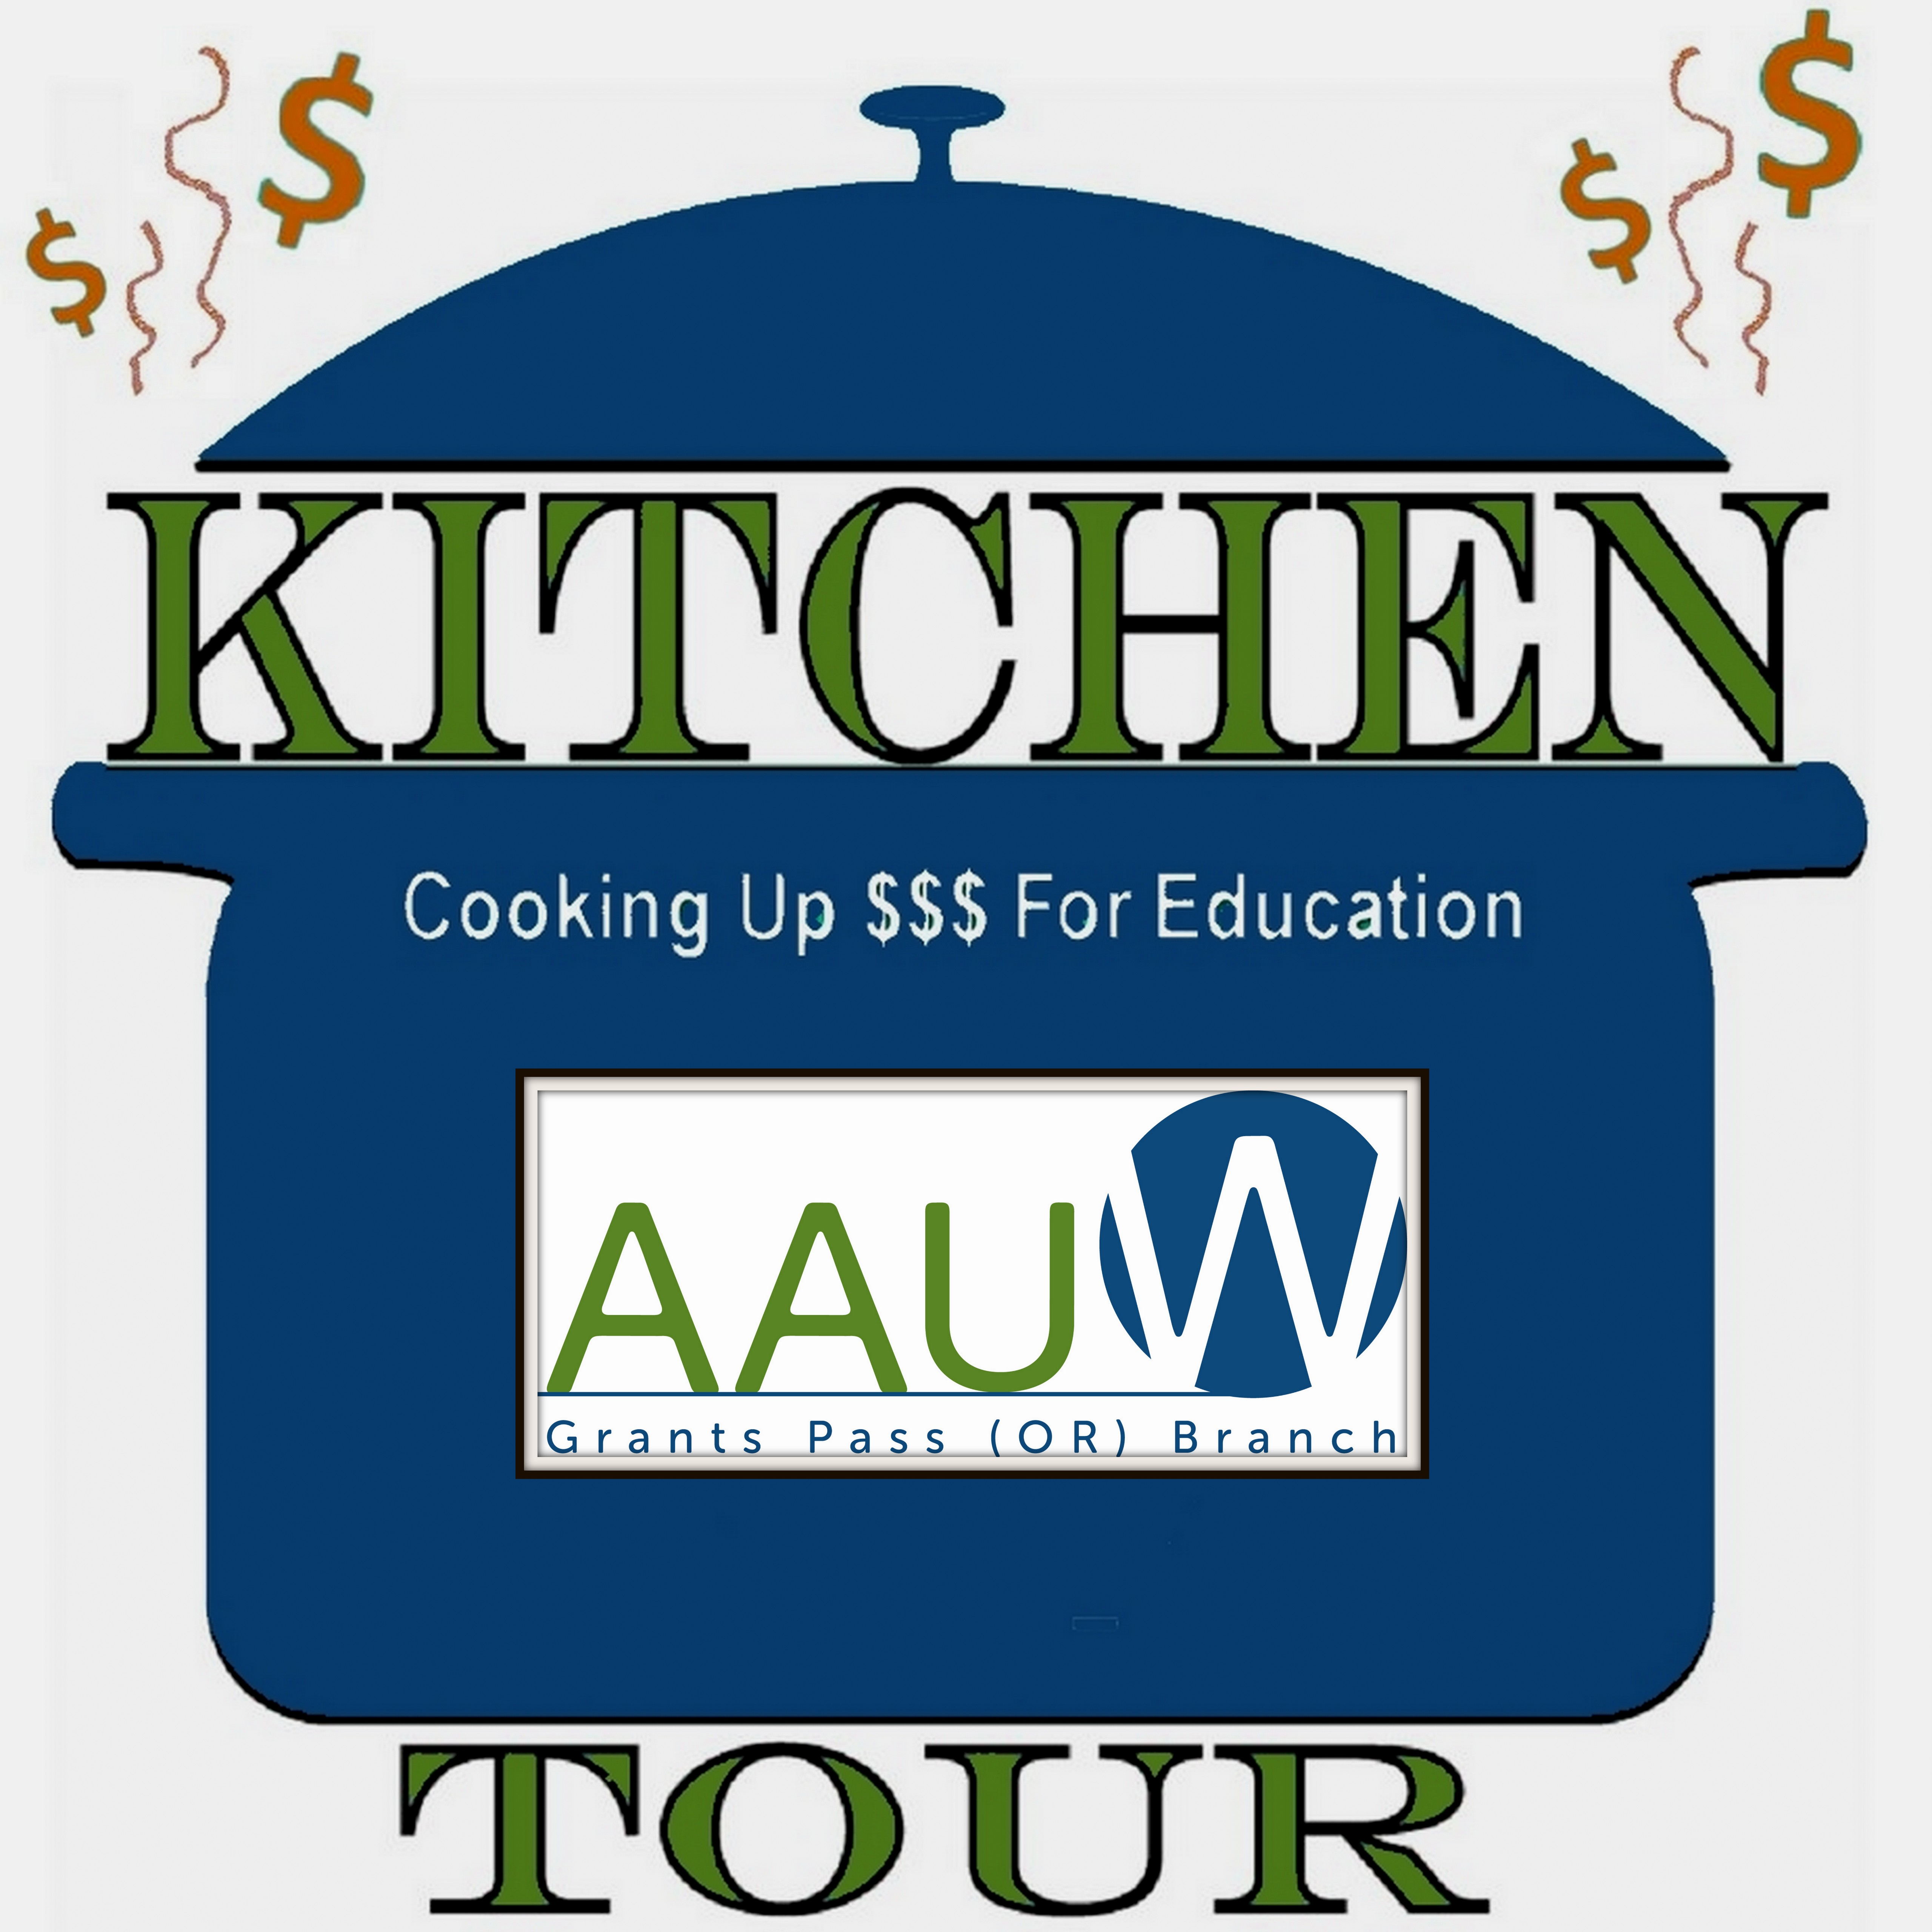 Aauw Kitchen Tour Grants Pass Or Branch